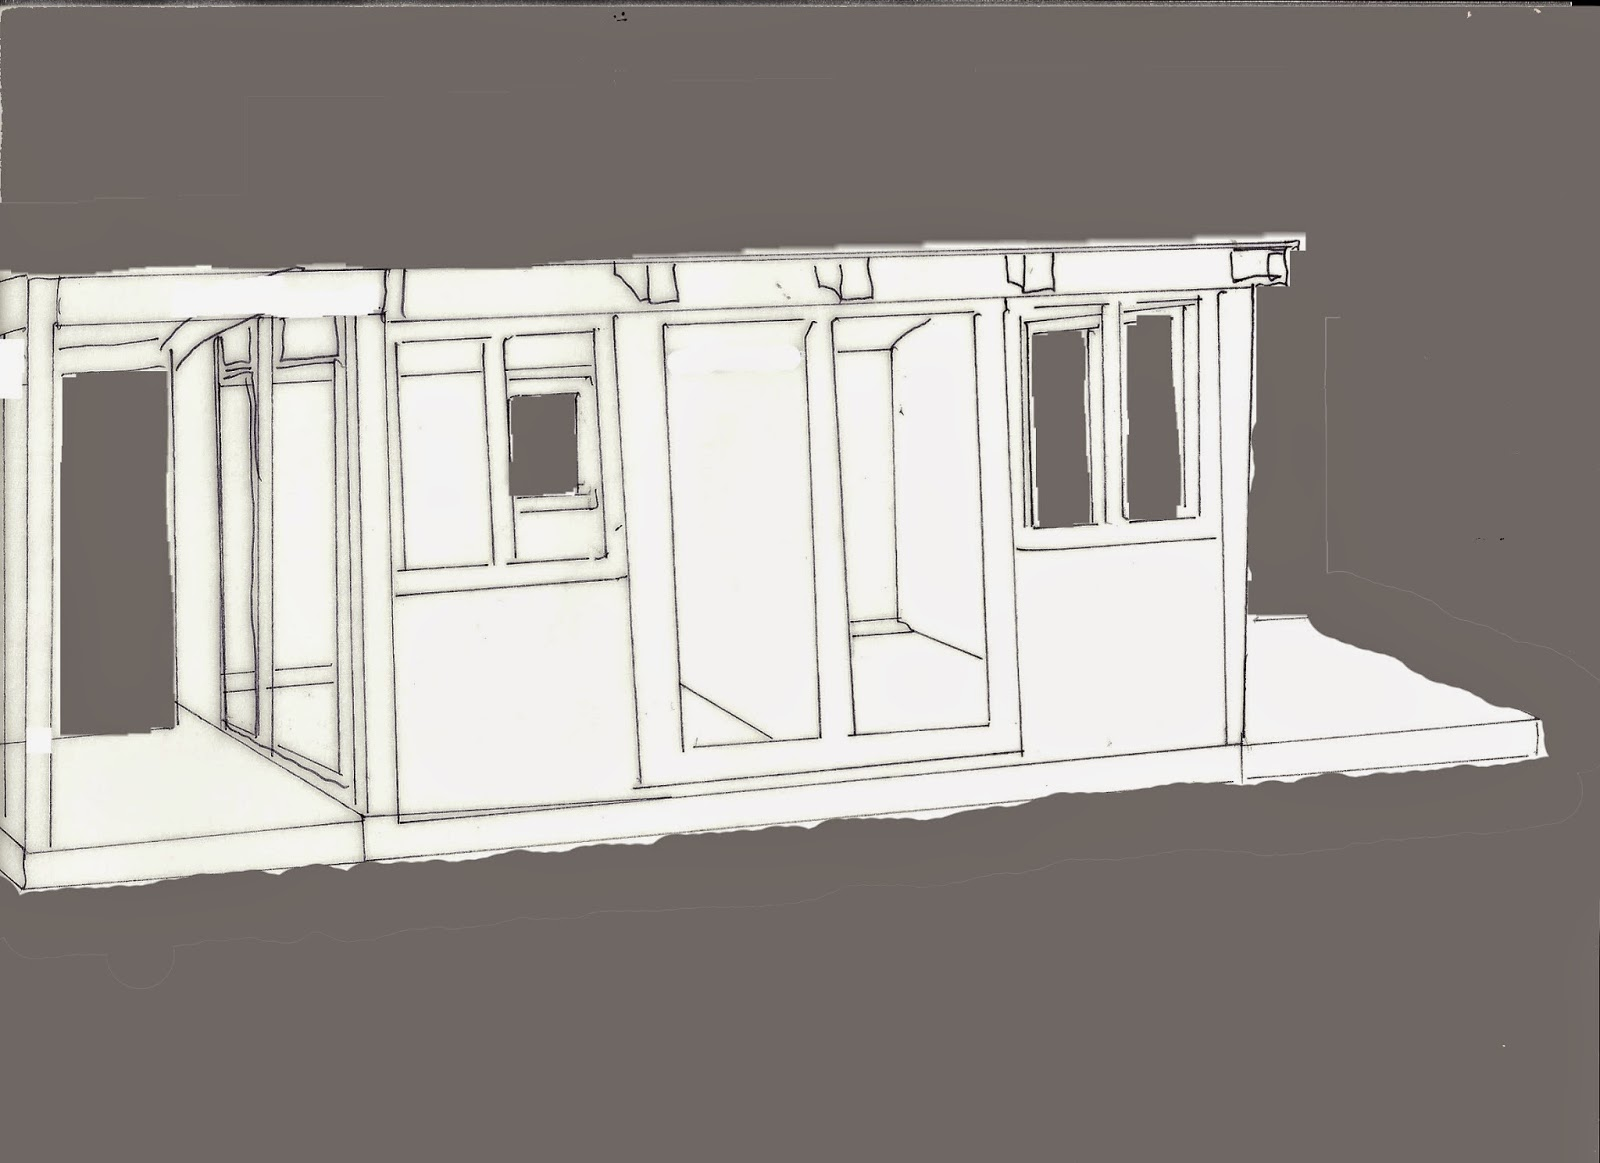 Outline of a shed split down the middle ,with two long windows and two short windows on the front and a deck on each side. The background is coloured grey to show placement of windows and doors at the side and rear.